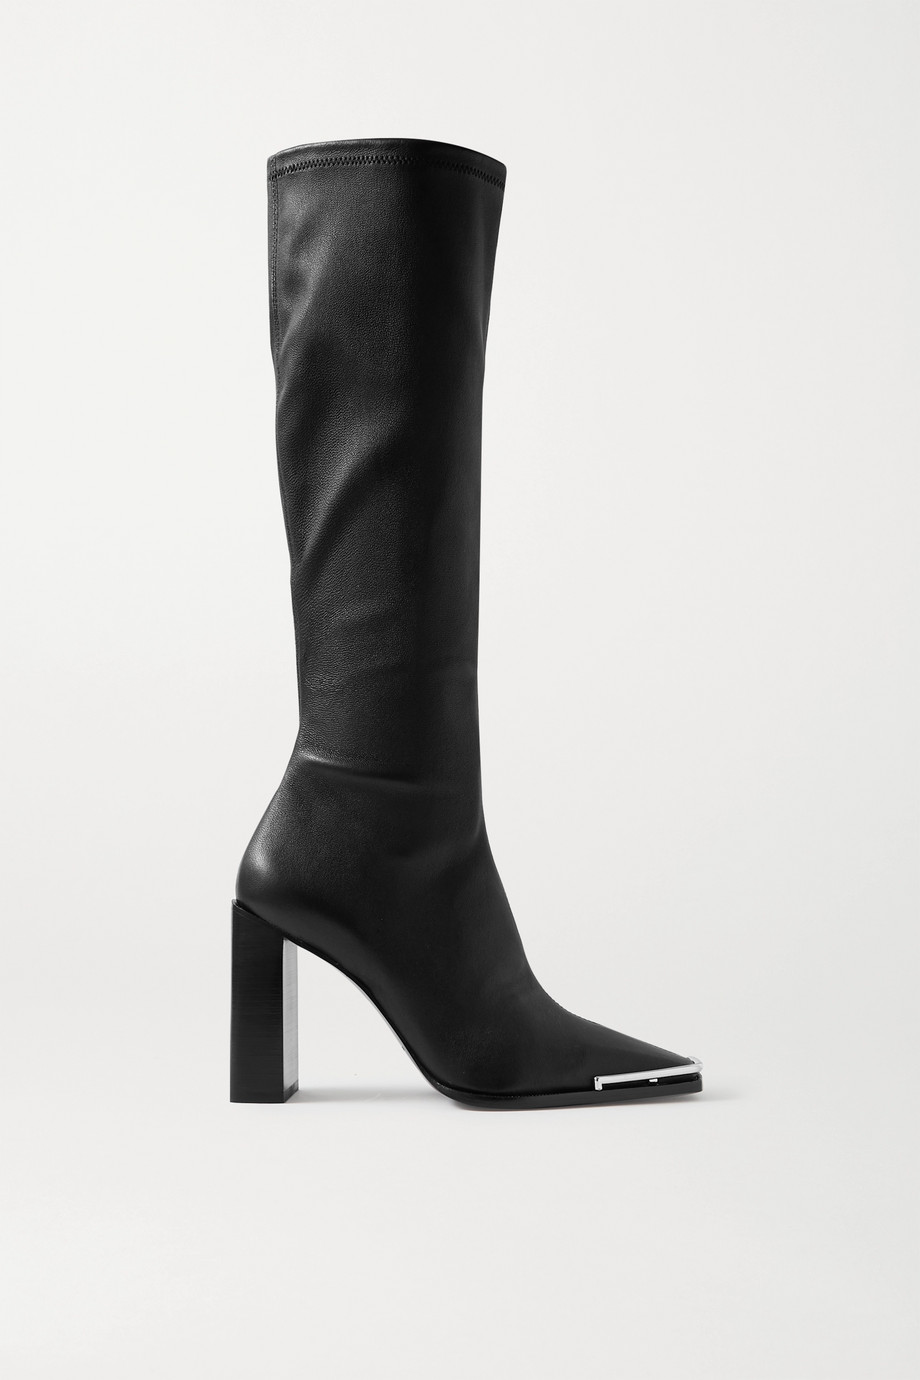 ALEXANDER WANG Mascha leather knee boots